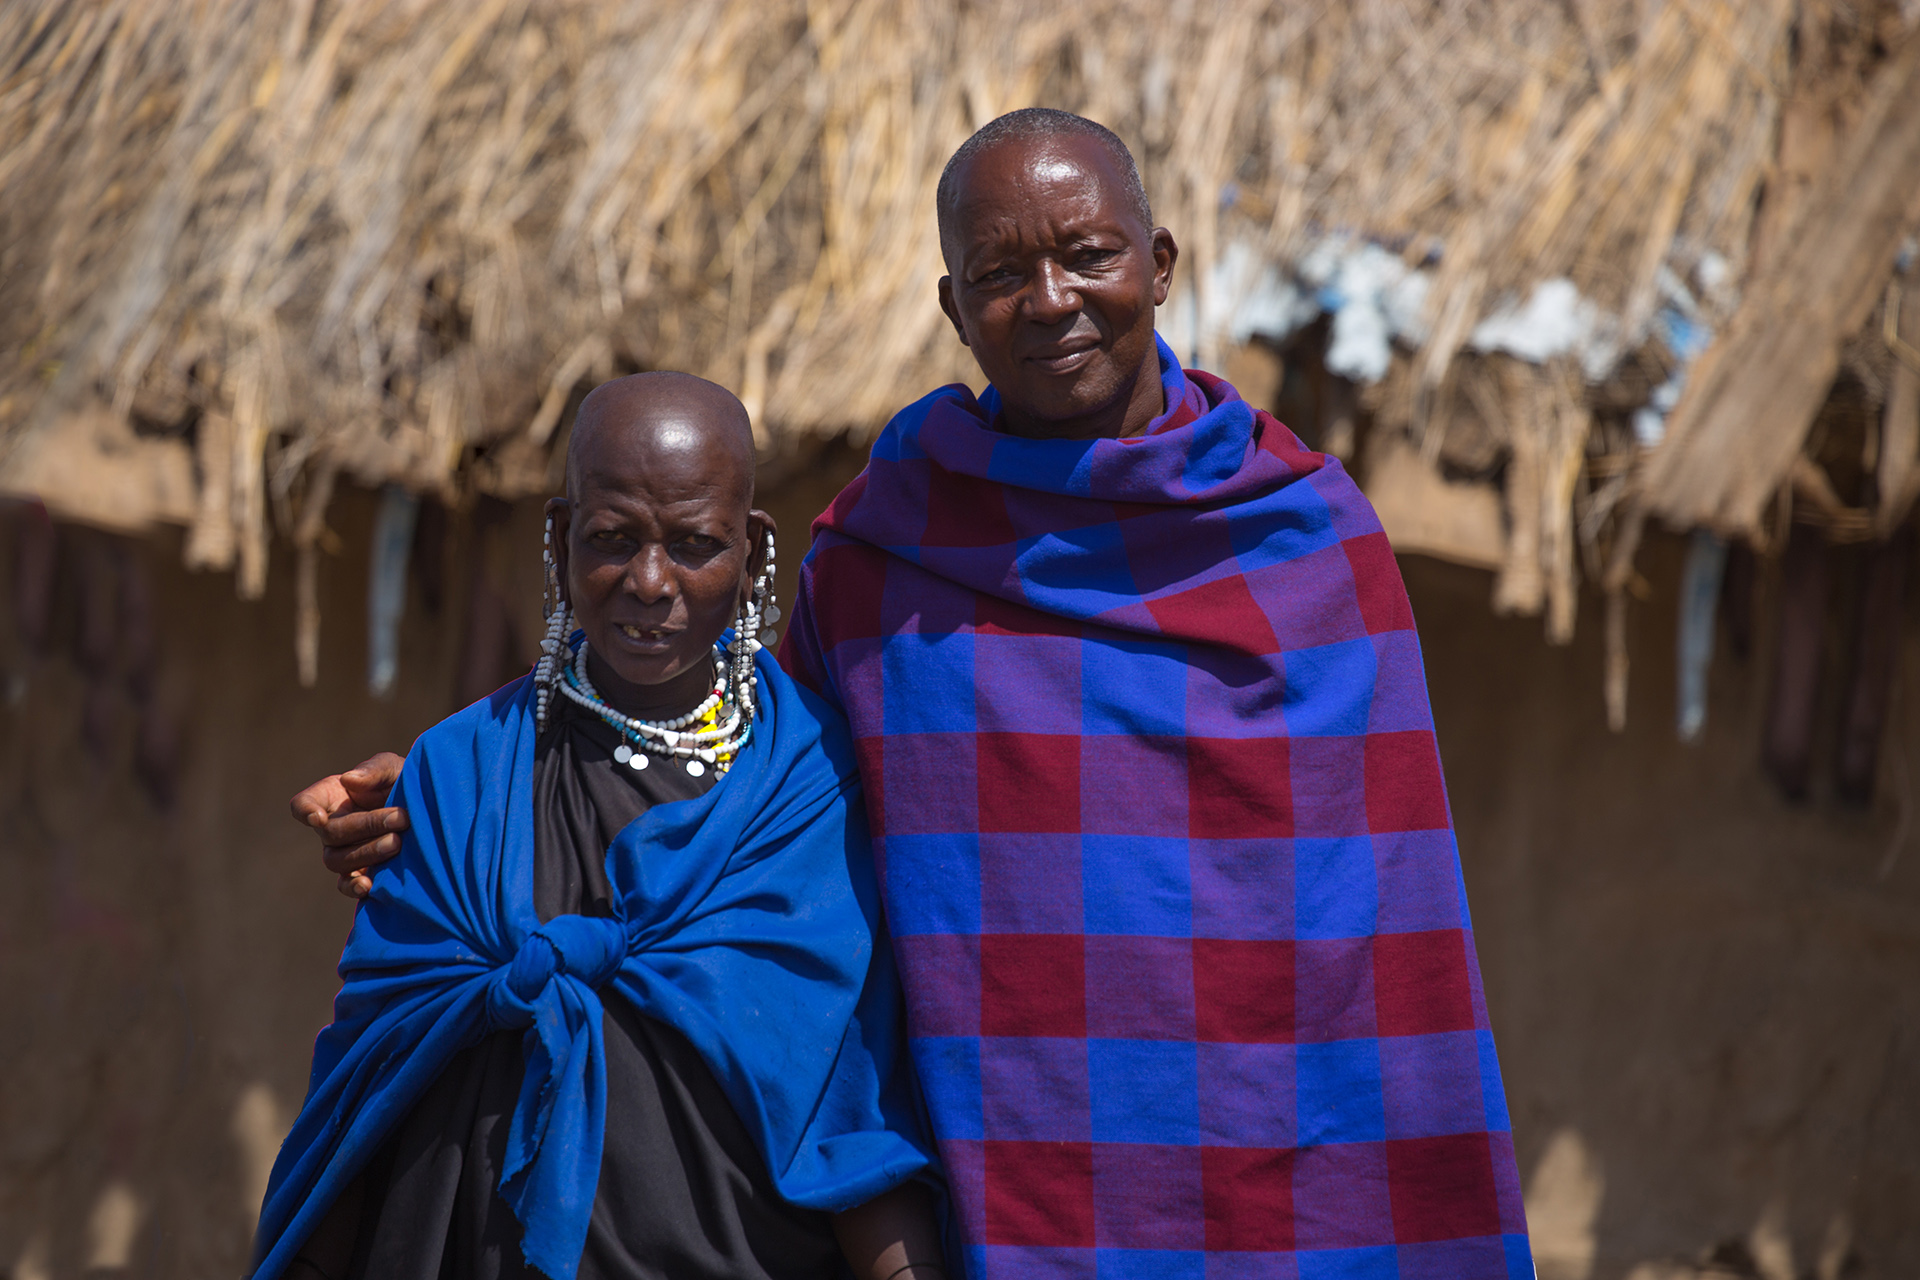 This Maasia couple live within a traditional Maasai enclosure. They have lived here all their lives, and now nearly 70 years later, they talk of the massive change in the landscape they have witnessed.